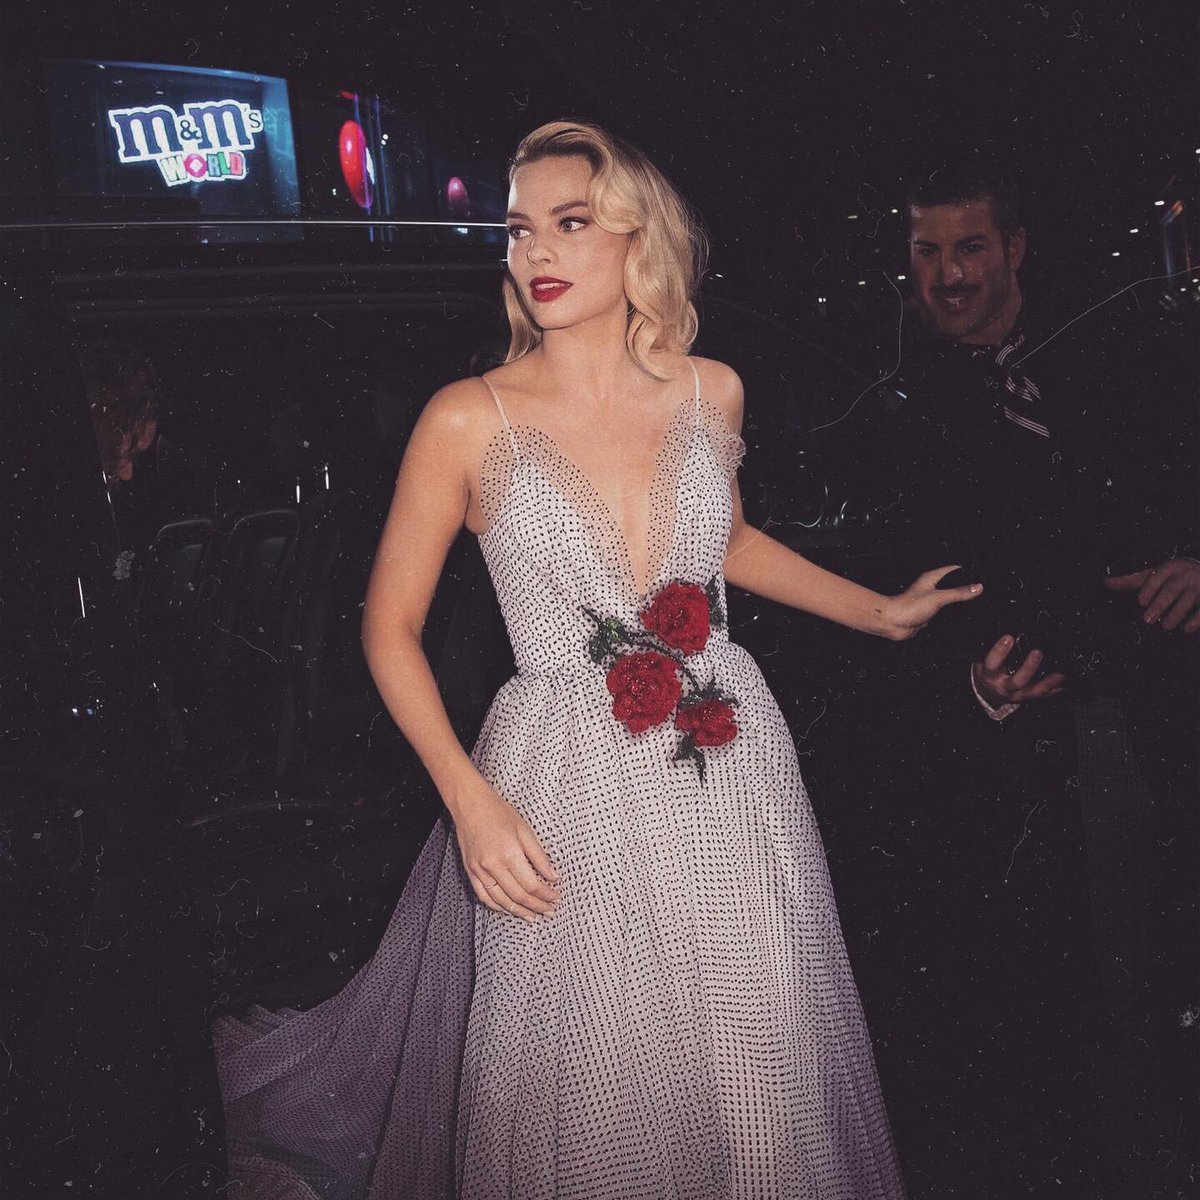 Margot Robbie have a real princess life<br>http://pic.twitter.com/SiQzkxoIBG